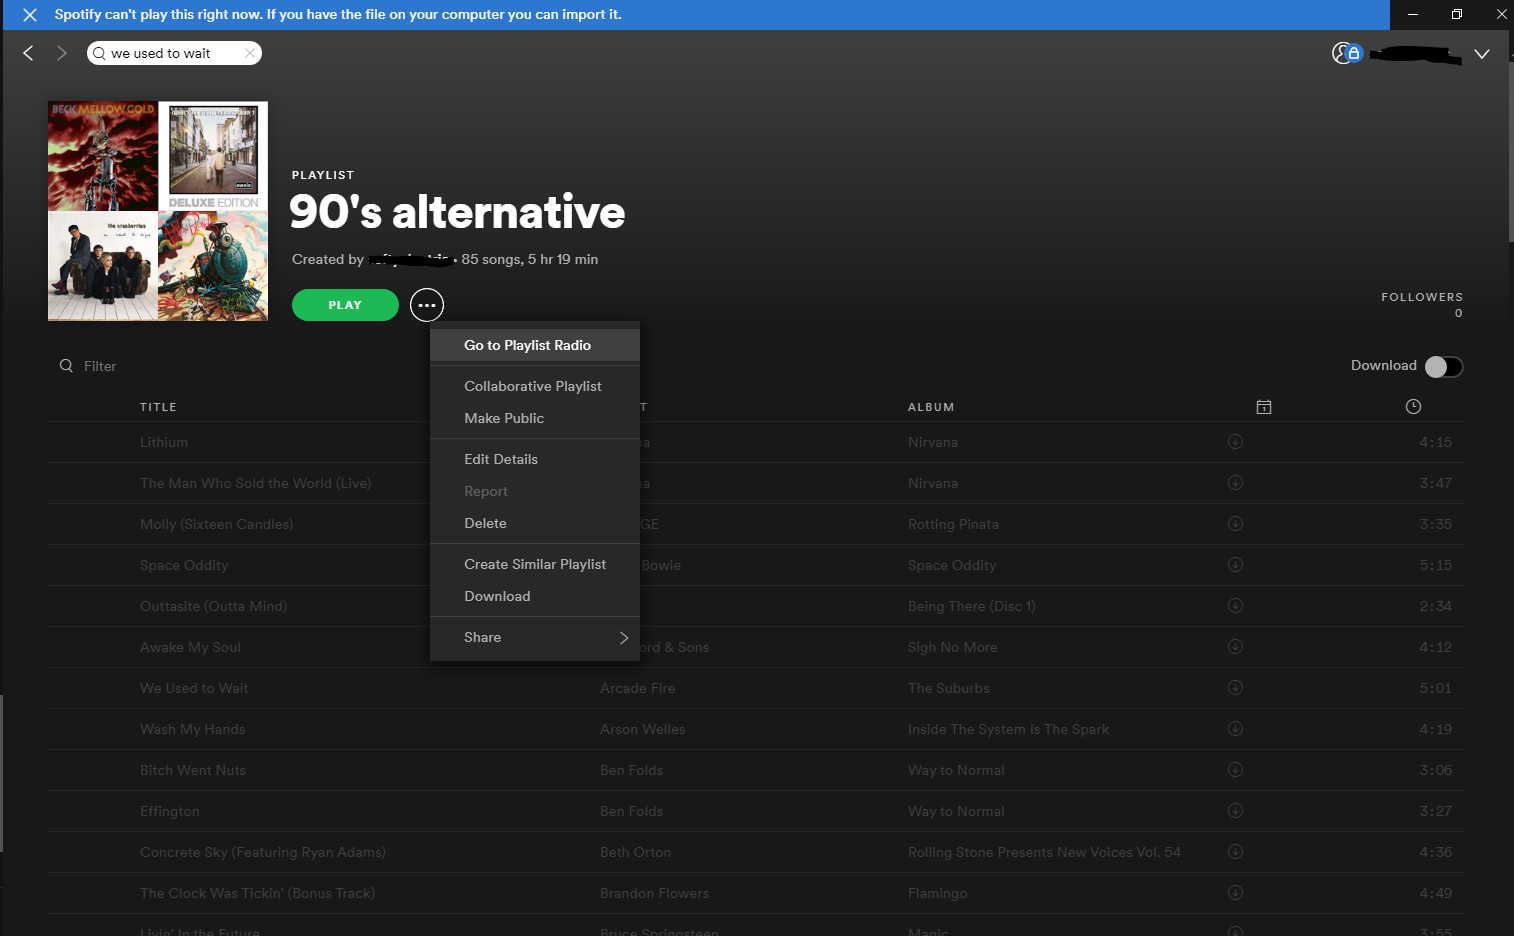 spotify issue.PNG